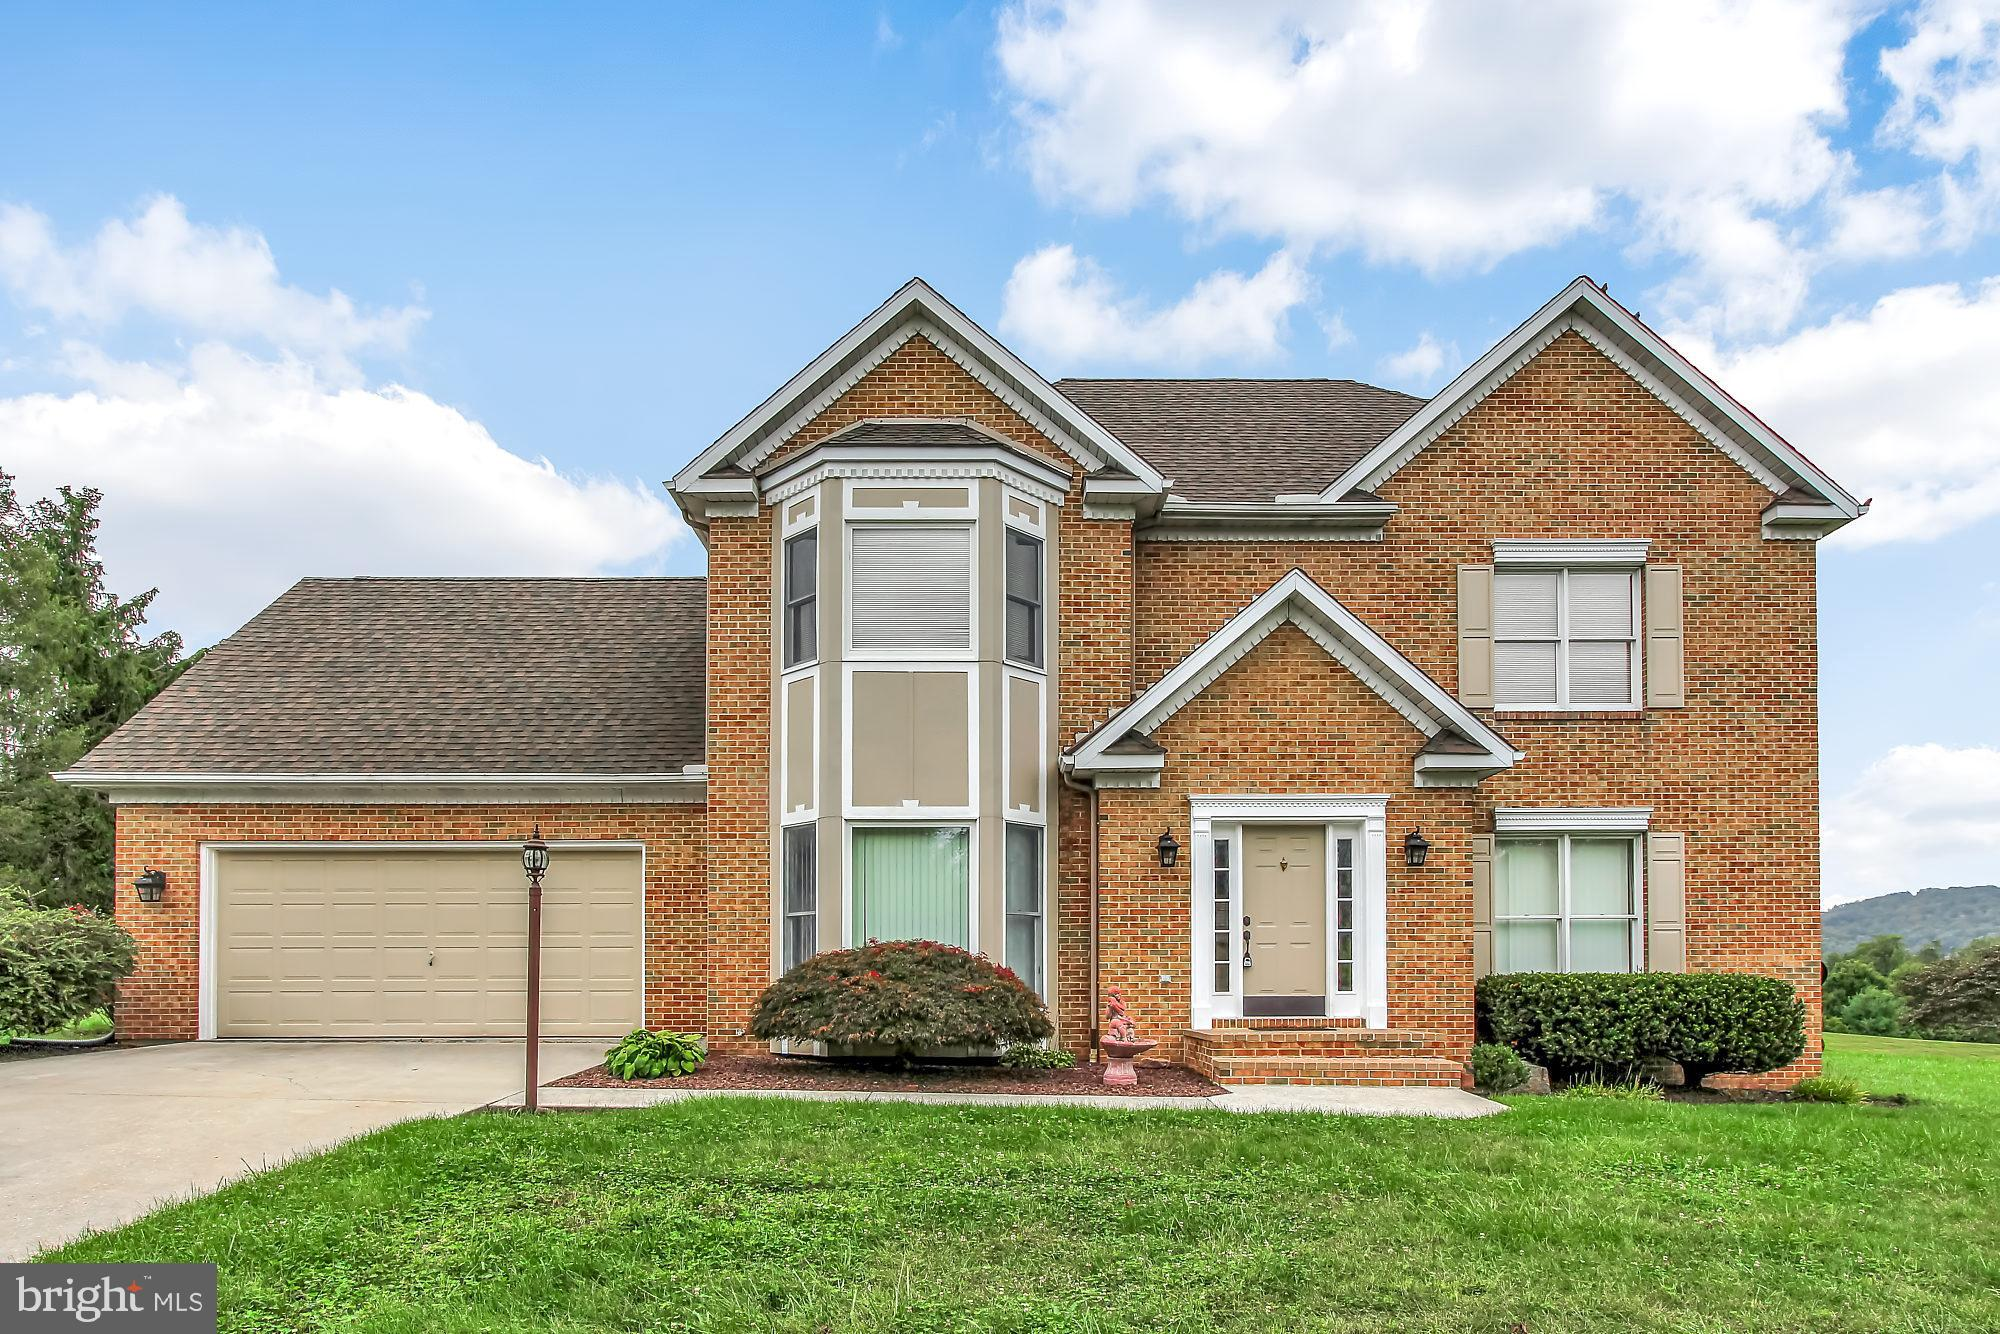 600 WHITETAIL DRIVE, LEWISBERRY, PA 17339